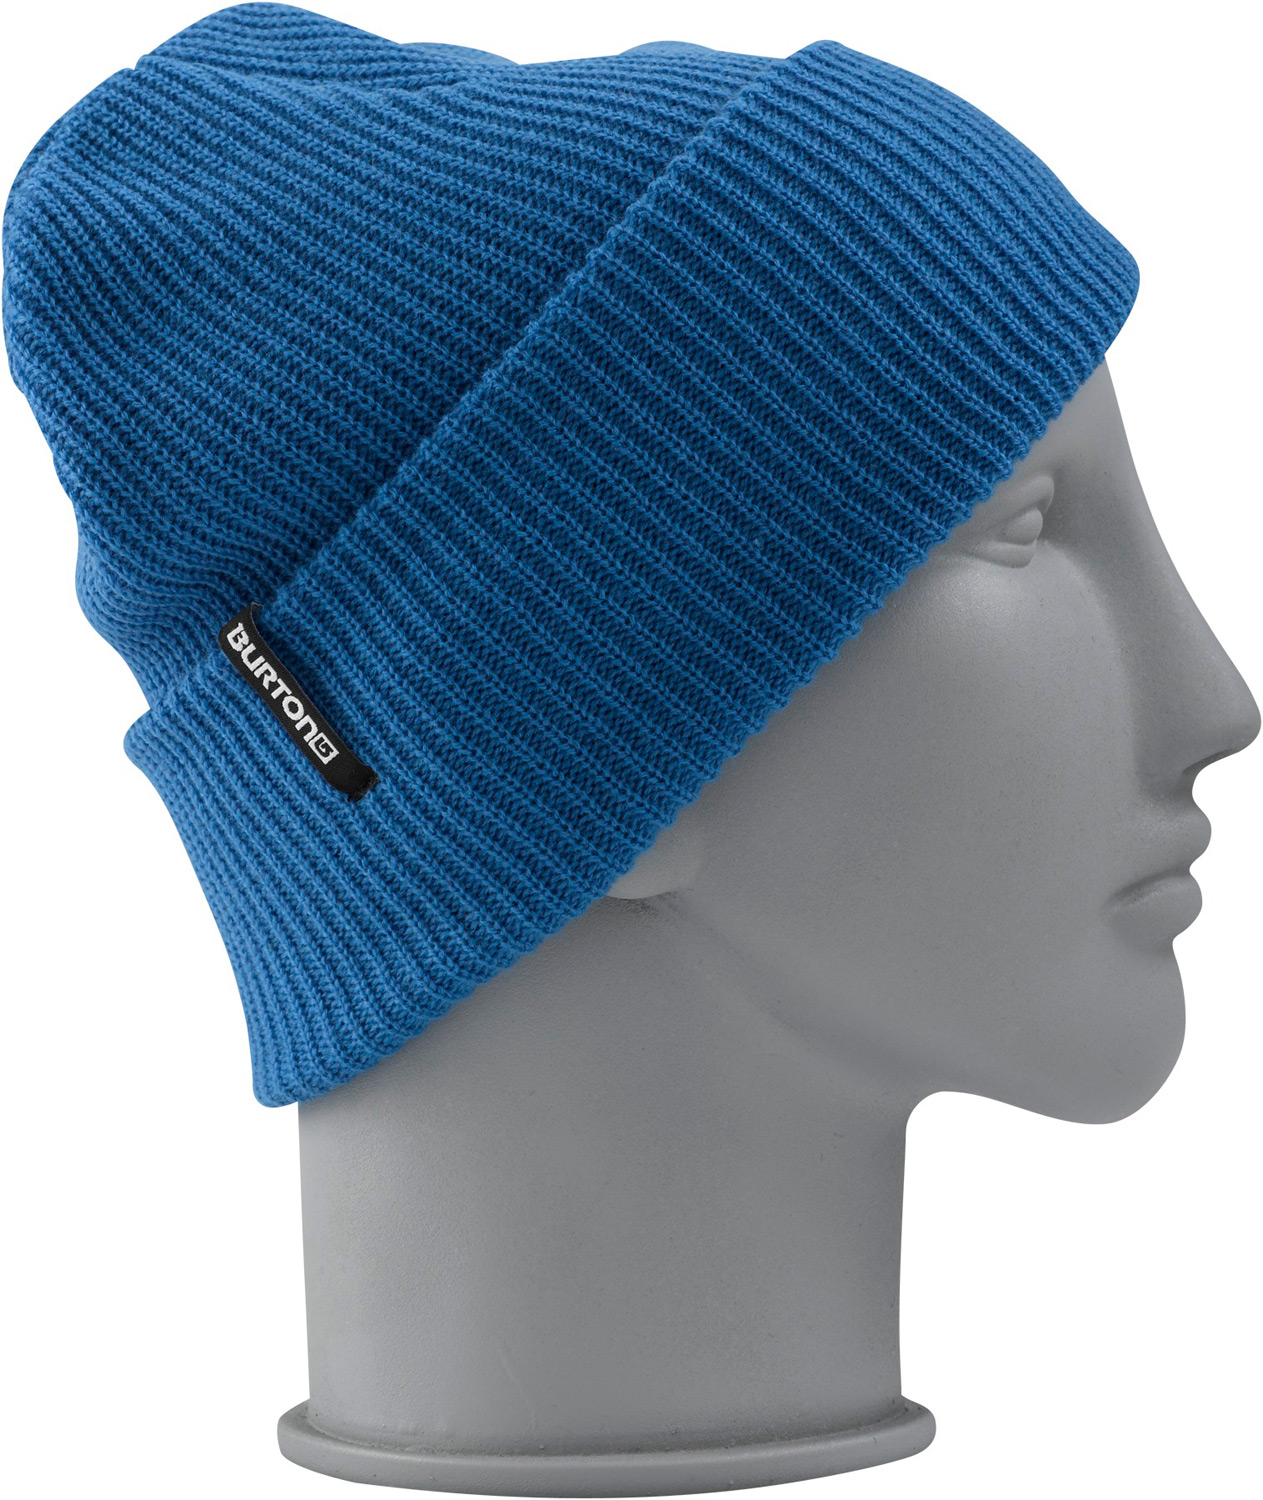 Snowboard Key Features of the Burton Truckstop Beanie: Fold-Up with Super Slouch Fit One Size Fits All 100% Acrylic/Basic Solid Knit Beanie - $13.00